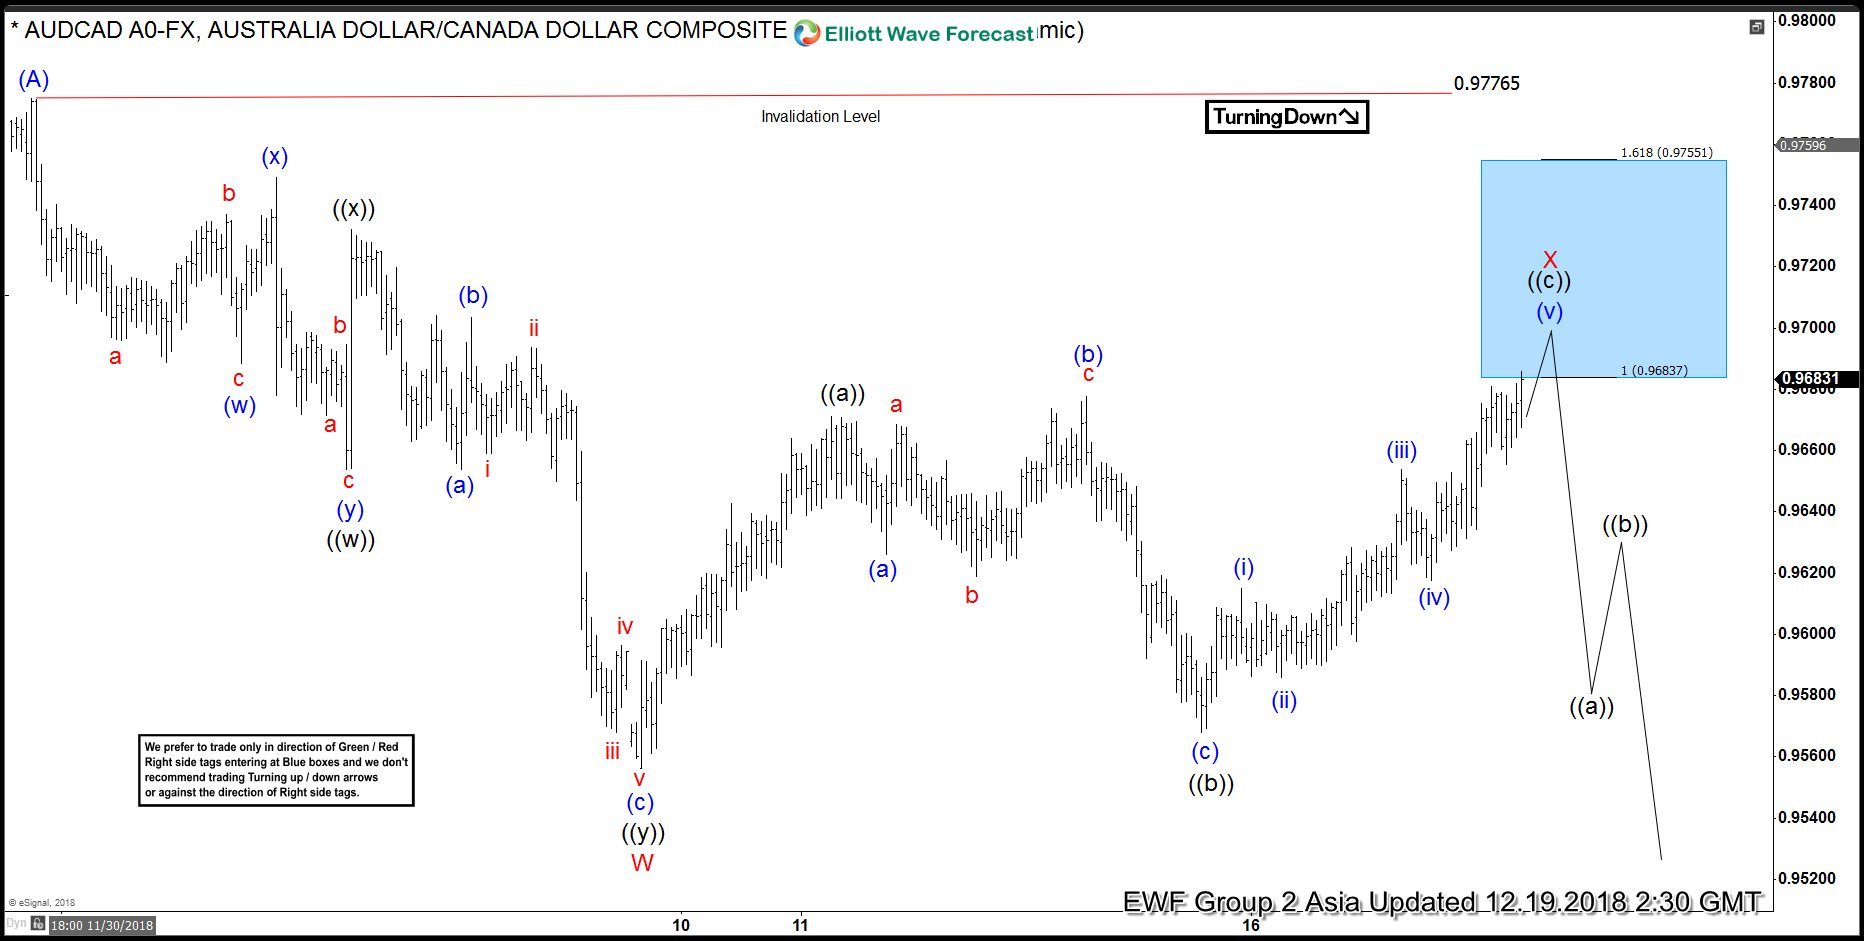 AUDCAD Elliott Wave Analysis: Calling The Reaction From Inflection Area